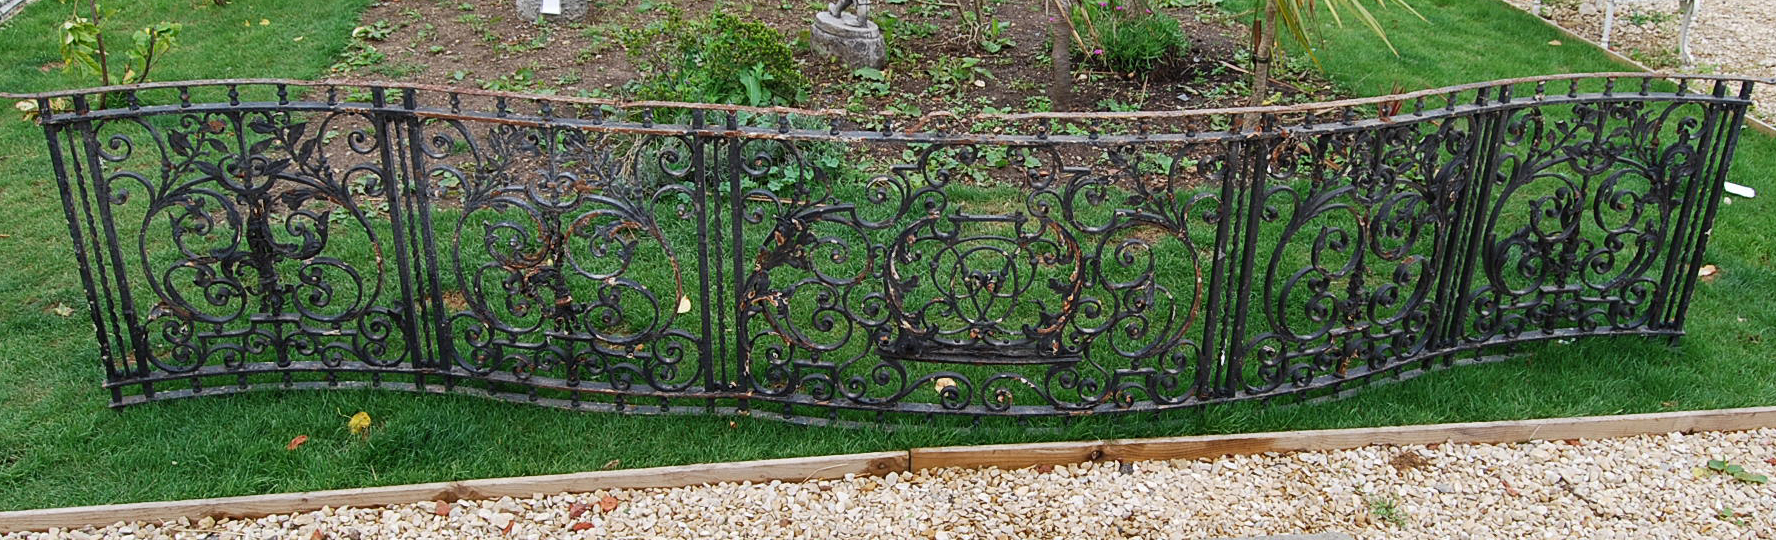 A section of English wrought iron terrace railing-65568